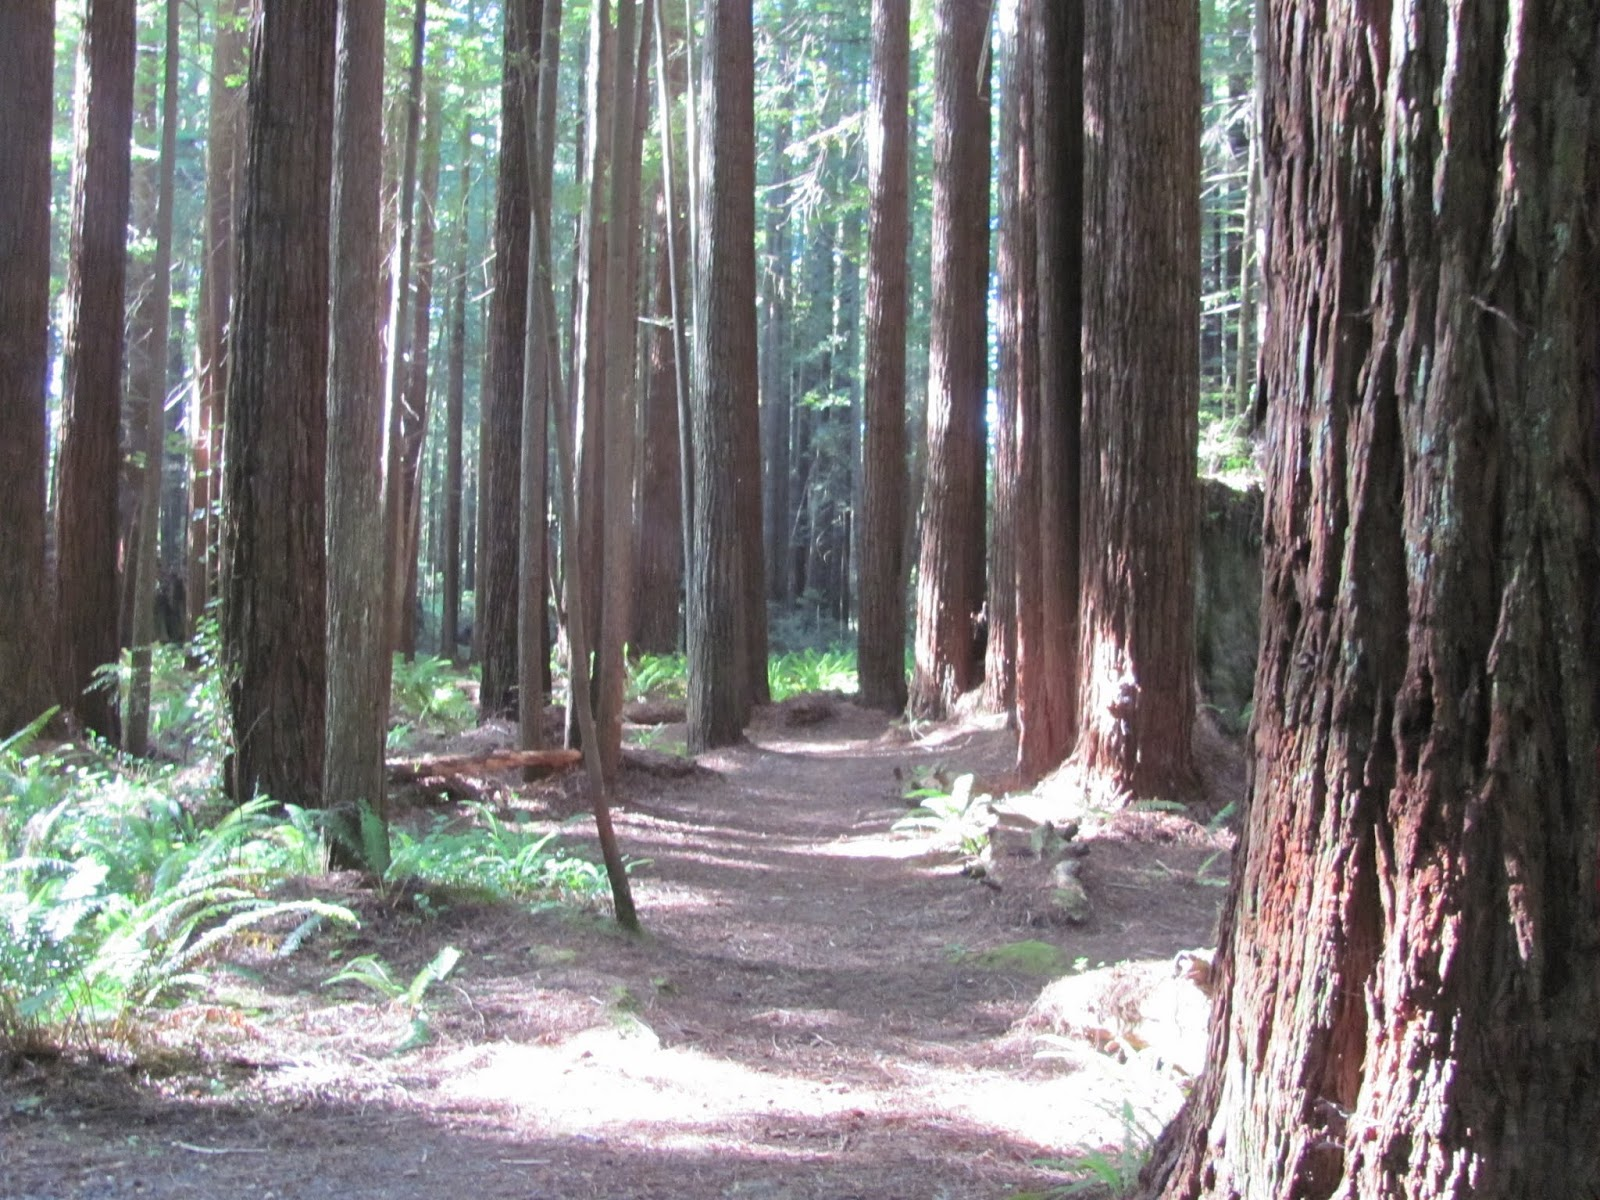 A path leads through the small redwood grove at Florence Keller County Park, California